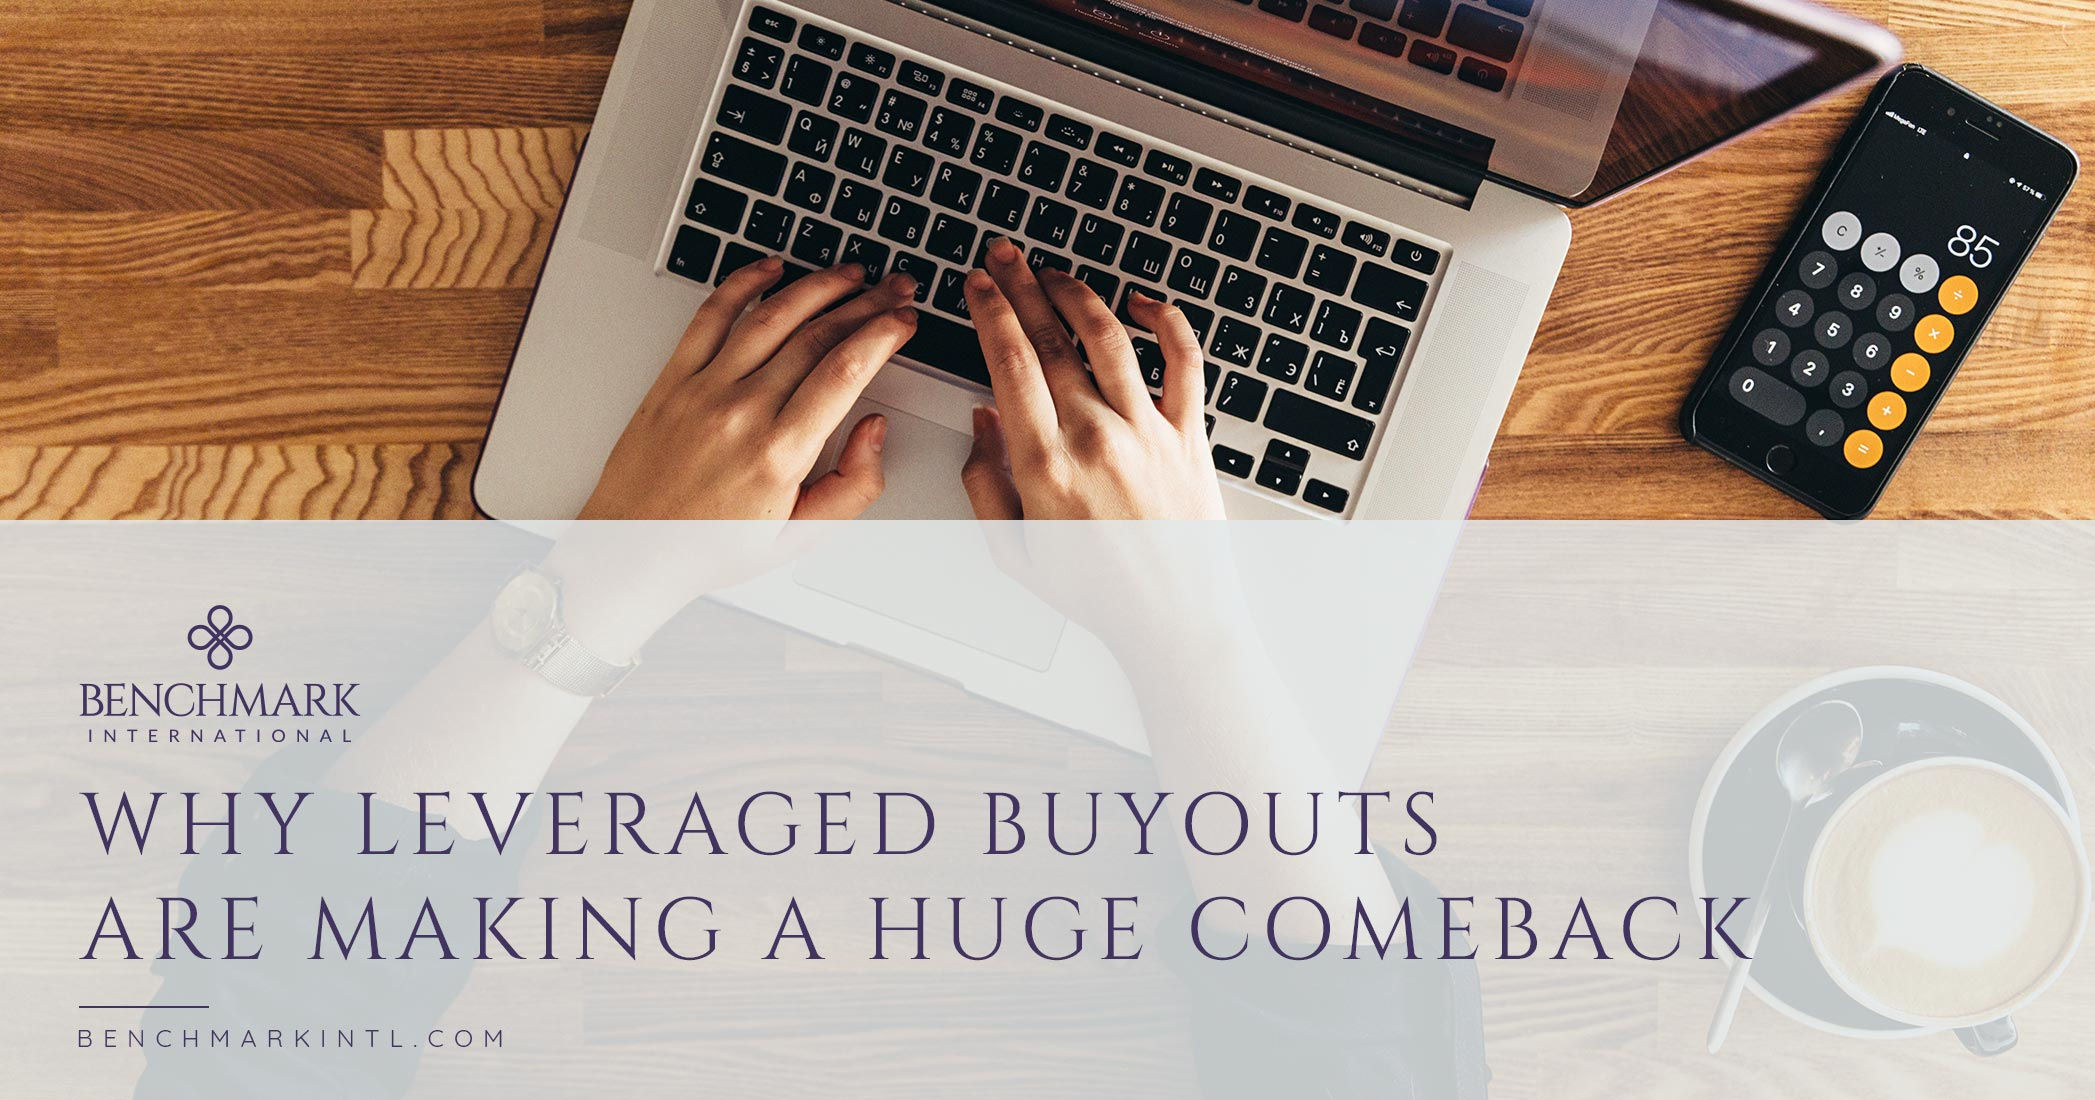 Why Leveraged Buyouts Are Making A Huge Comeback